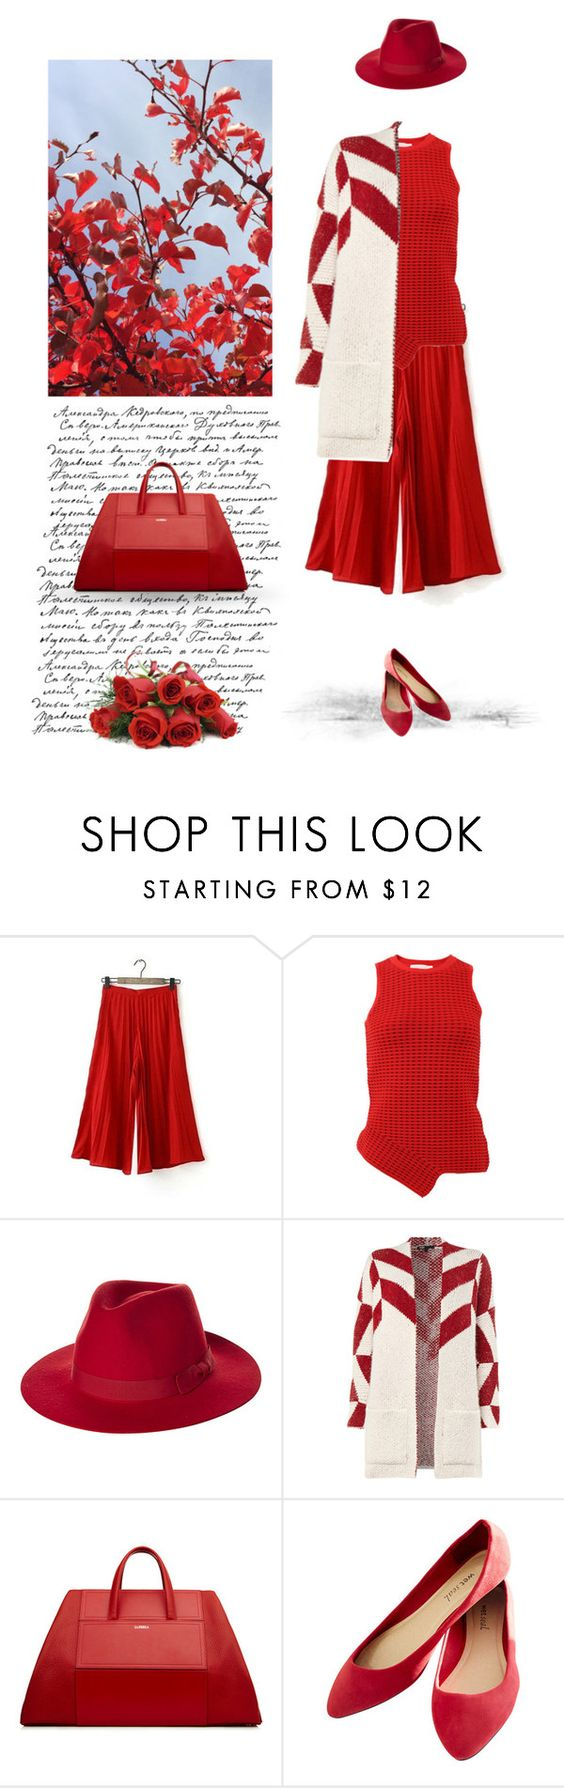 """Red fall"" by soofiia ❤ liked on Polyvore featuring Jonathan Simkhai, Brixton, Maje and Wet Seal"